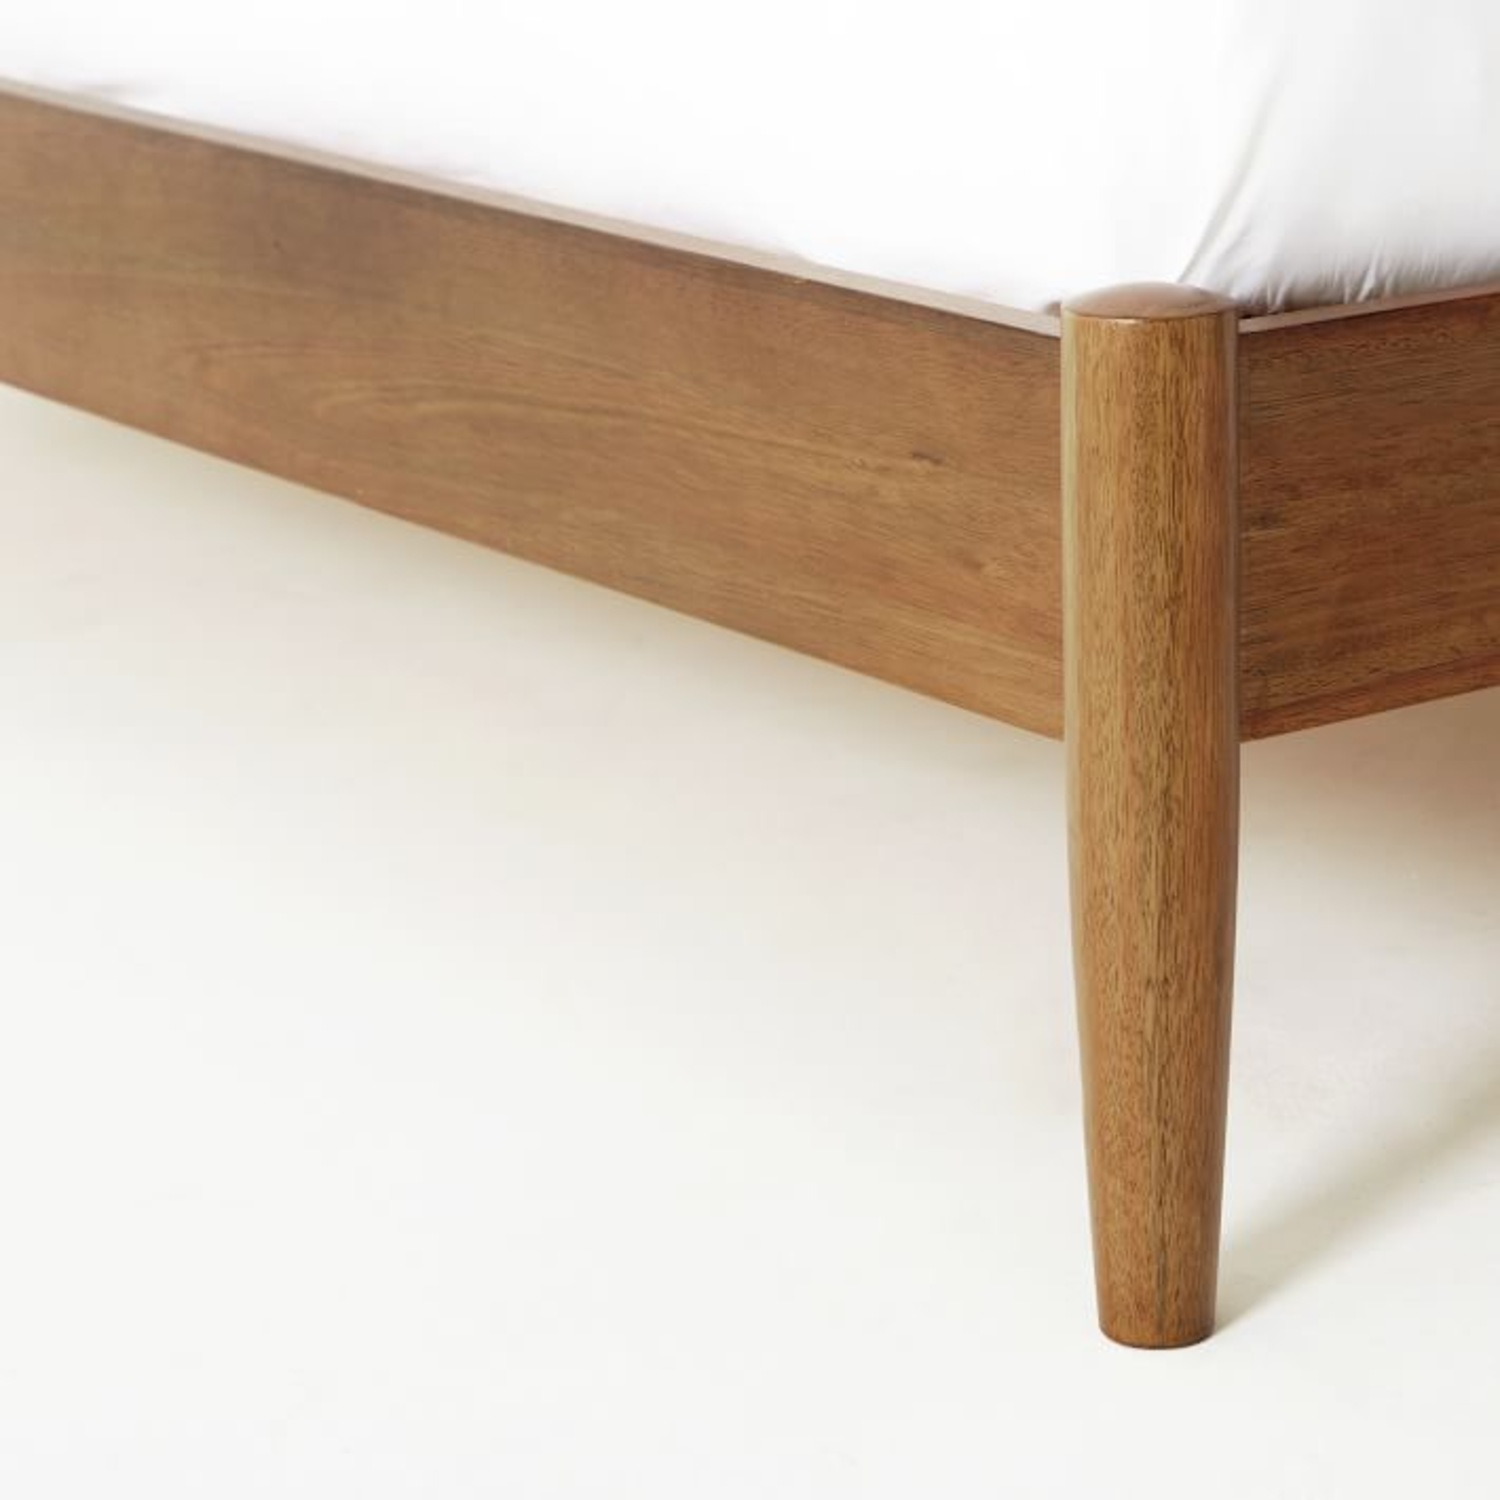 West Elm Mid Century Bed - King - image-2